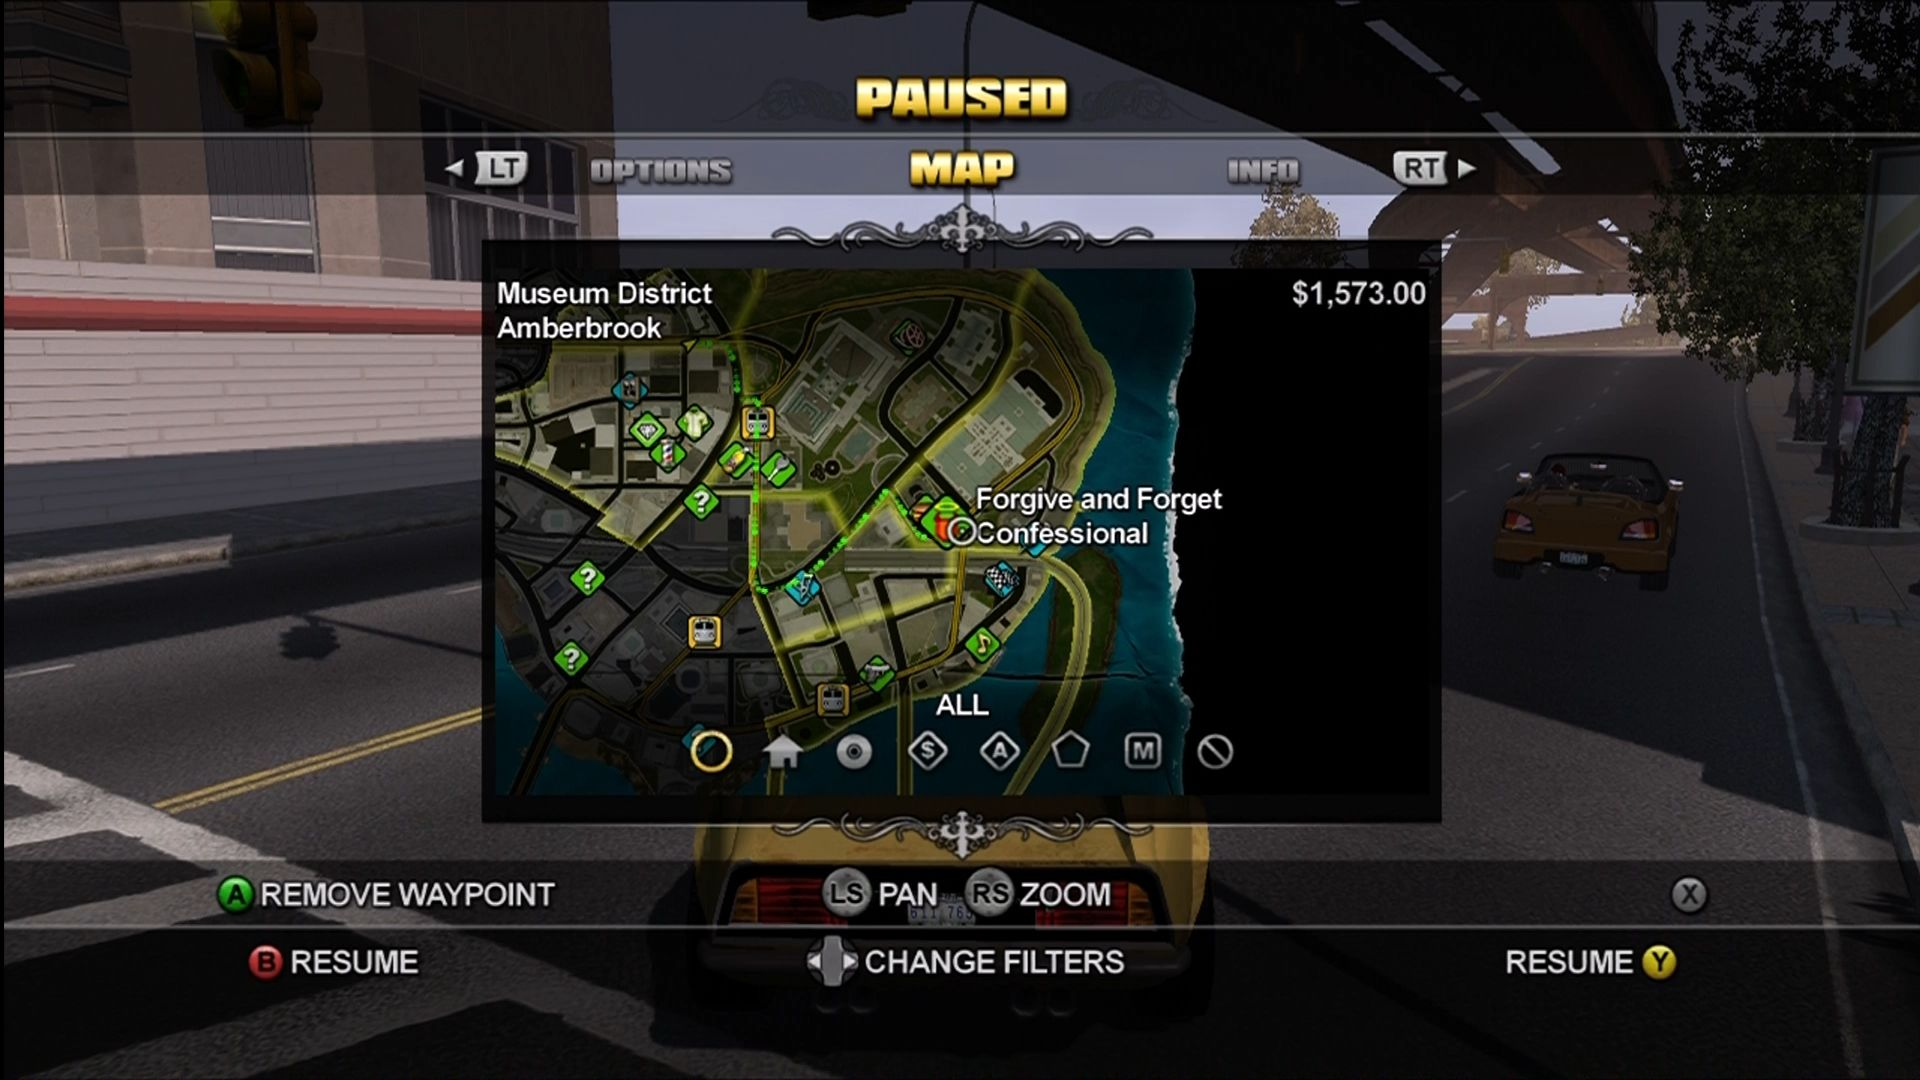 Saints Row Xbox 360 The map/GPS will guide you to placed waypoints.